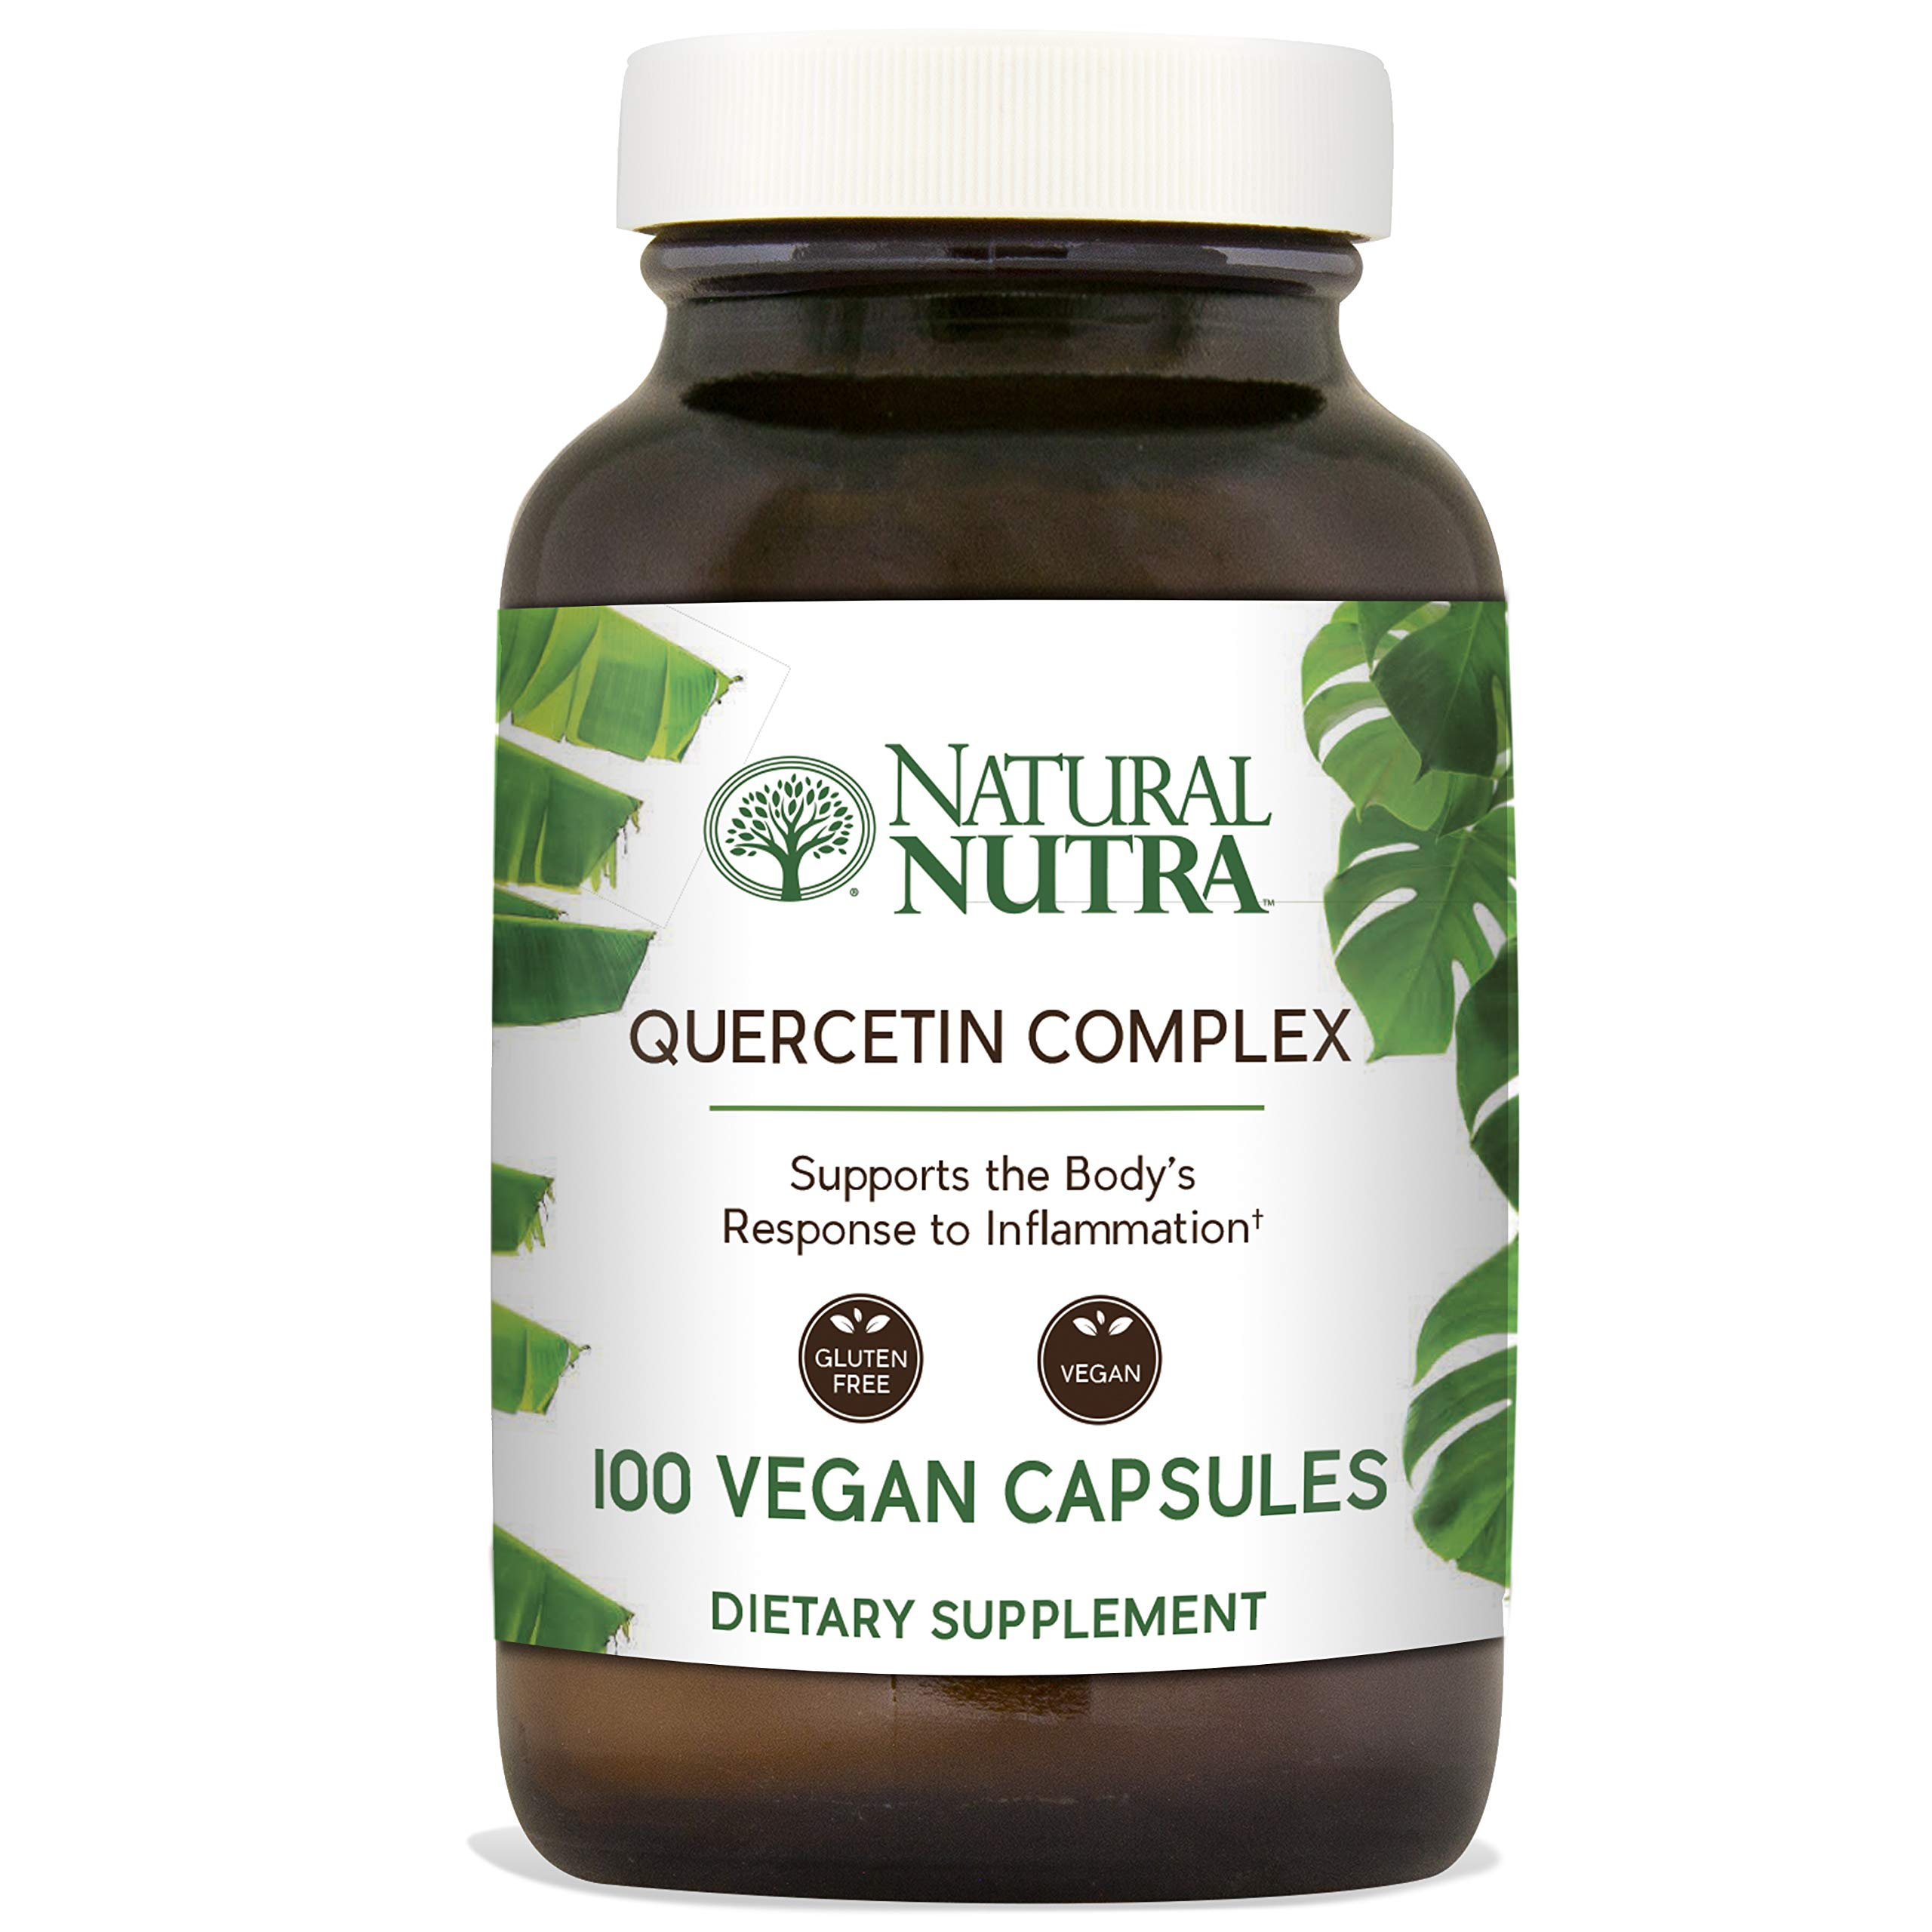 Natural Nutra Quercetin Complex with Bromelain, Vitamin C Citrus Bioflavonoid Supplement, Antioxidant and Inflammation Support, 100 Vegan and Vegetarian Capsules